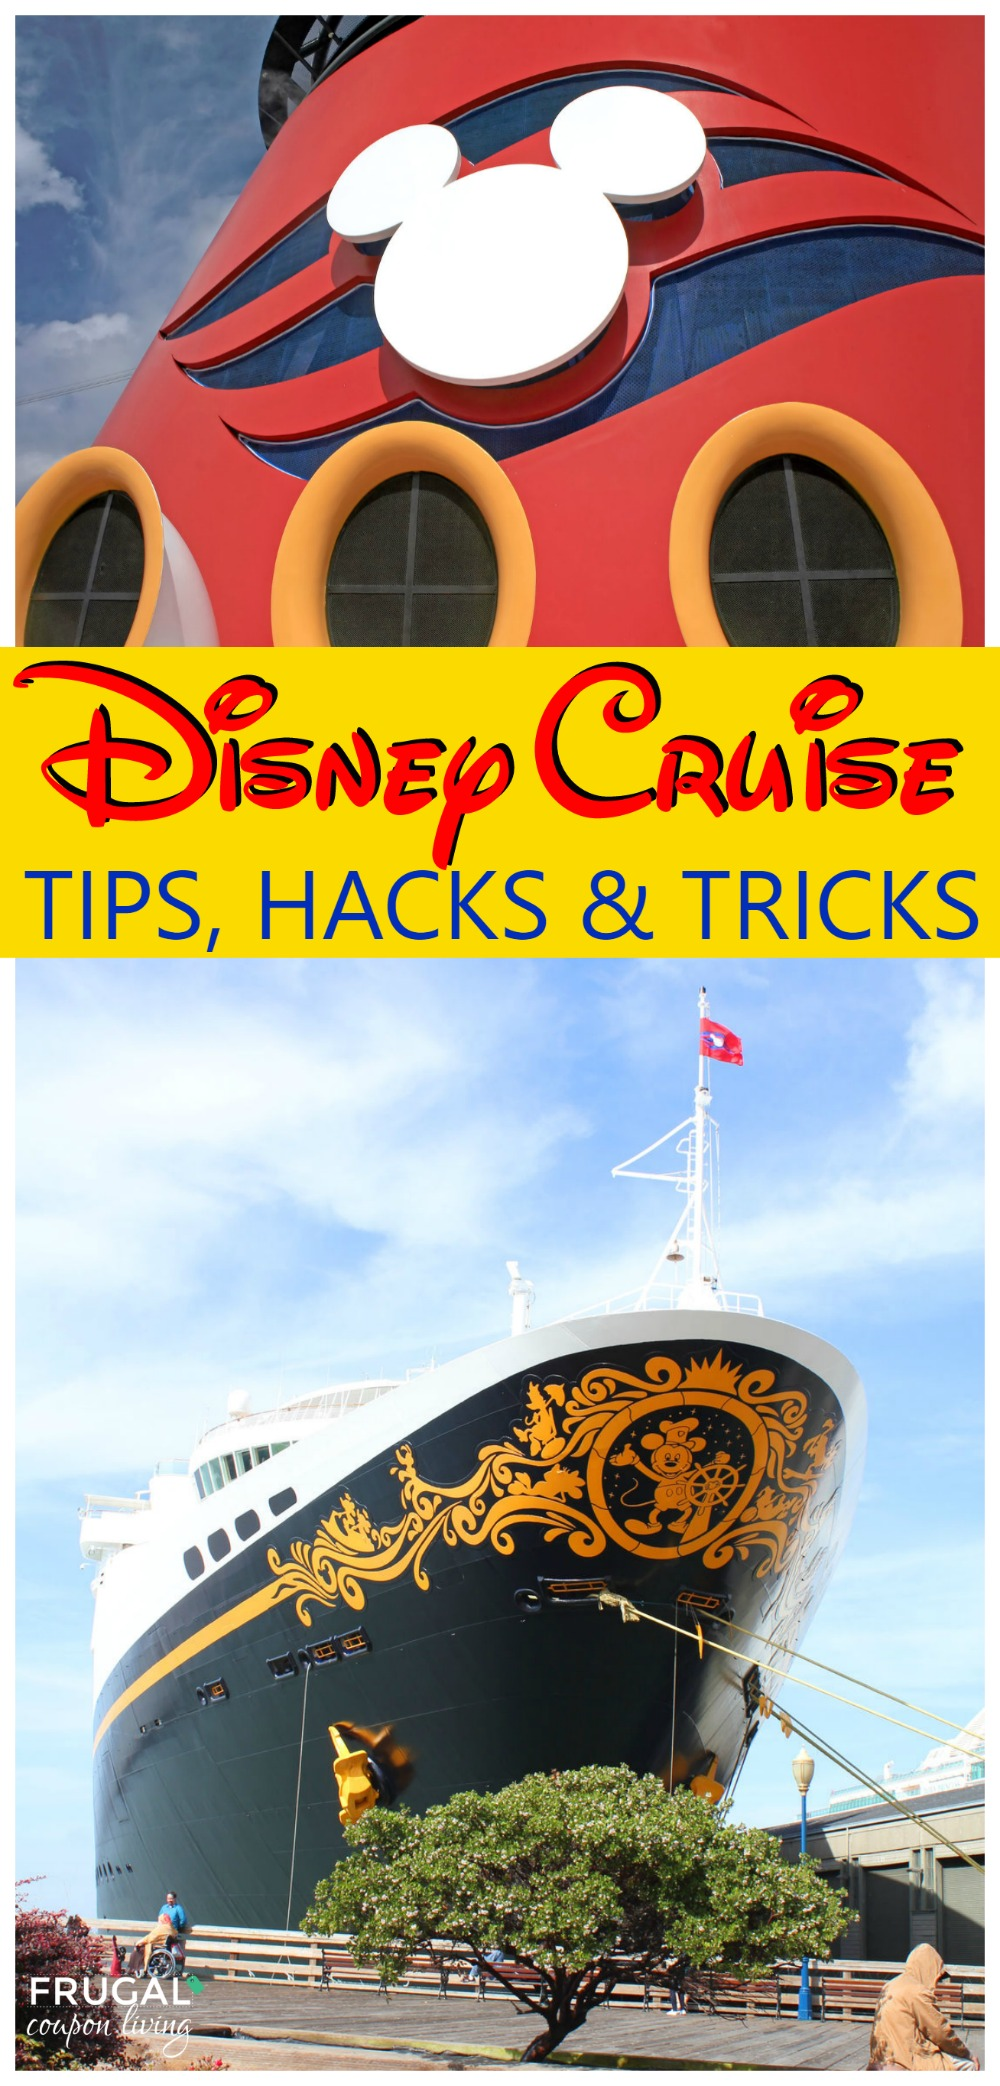 Disney-Cruise-Tips-Hacks-Tricks-Frugal-Coupon-Living